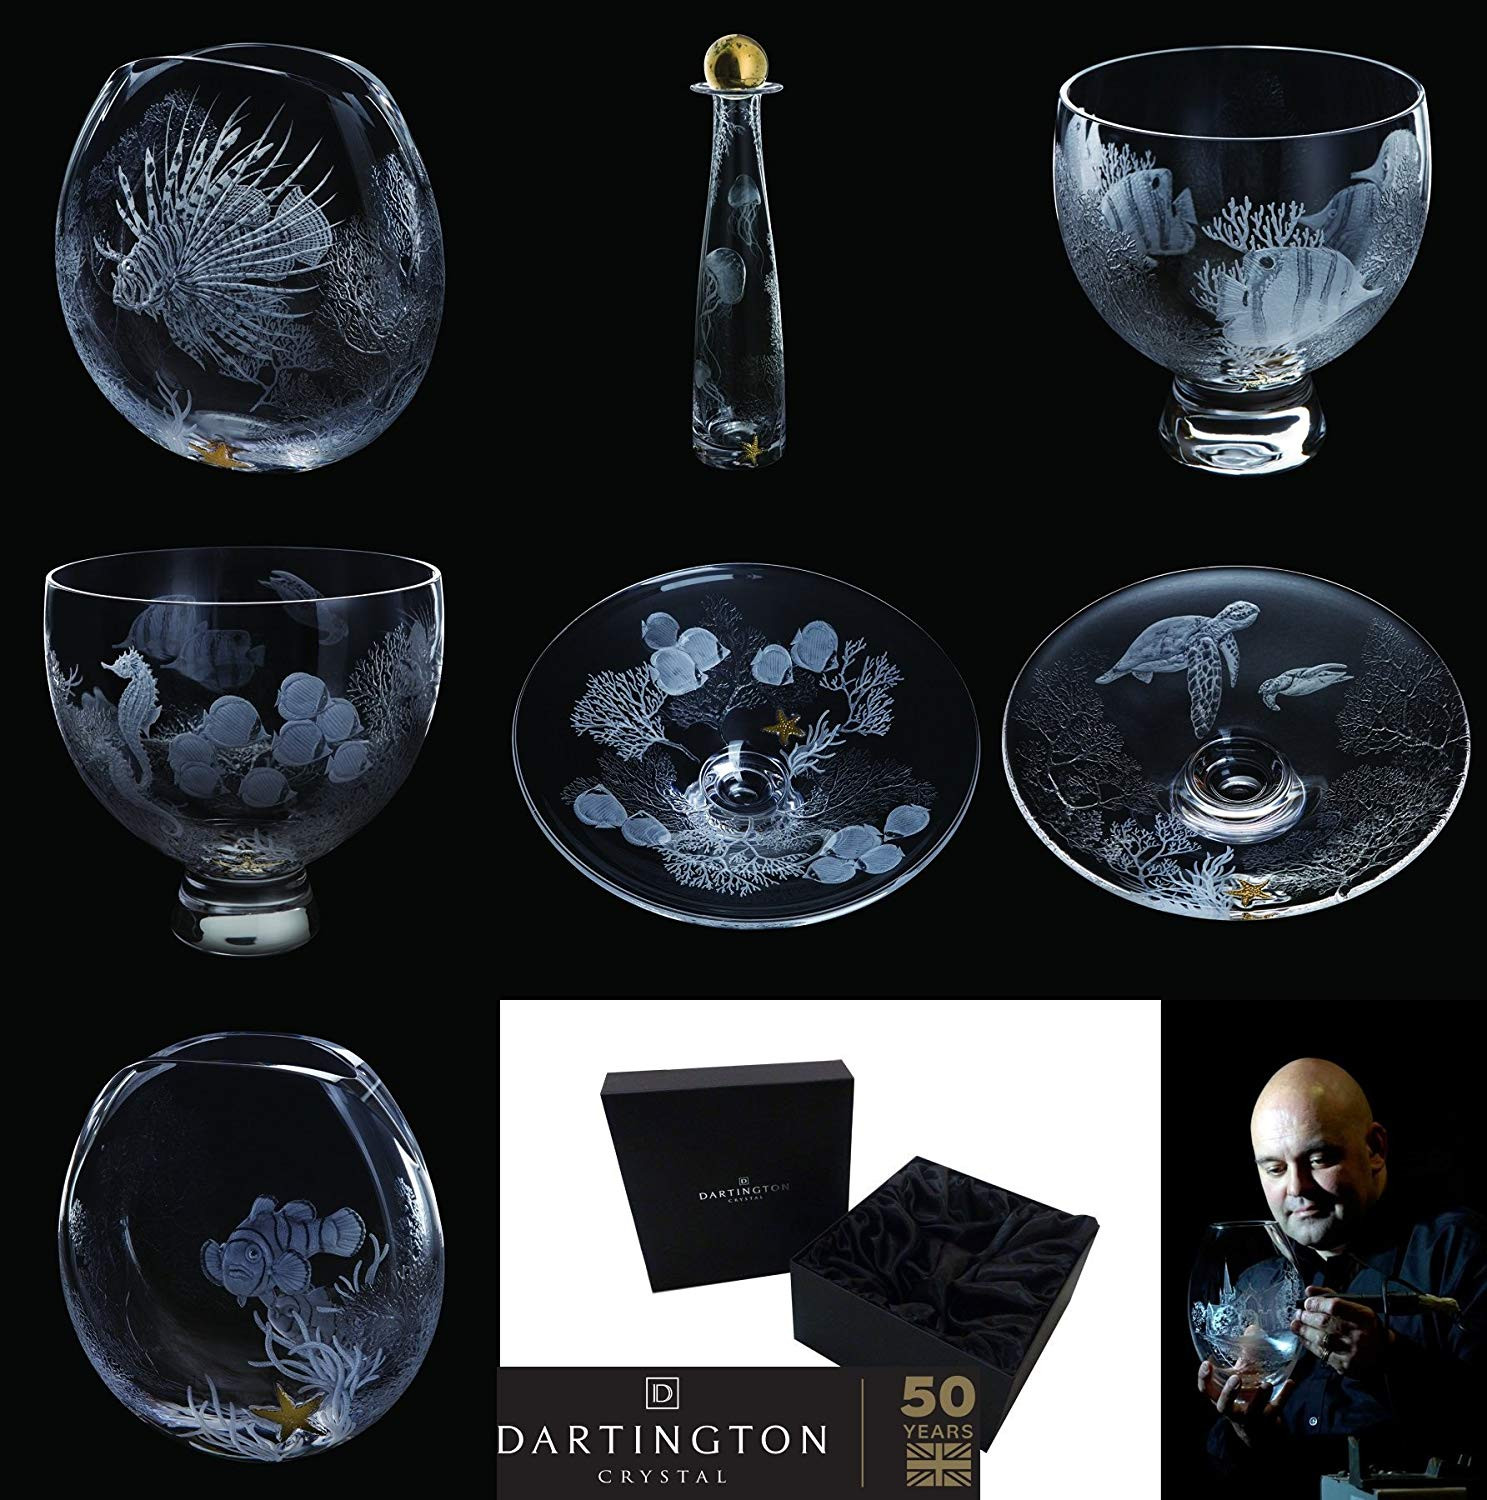 old waterford crystal vase of dartington crystal tall large seahorse glass vase wedding home party throughout master engraver nick davey has used the tropical undersea world as the inspiration for this stunning collection of hand engraved studies